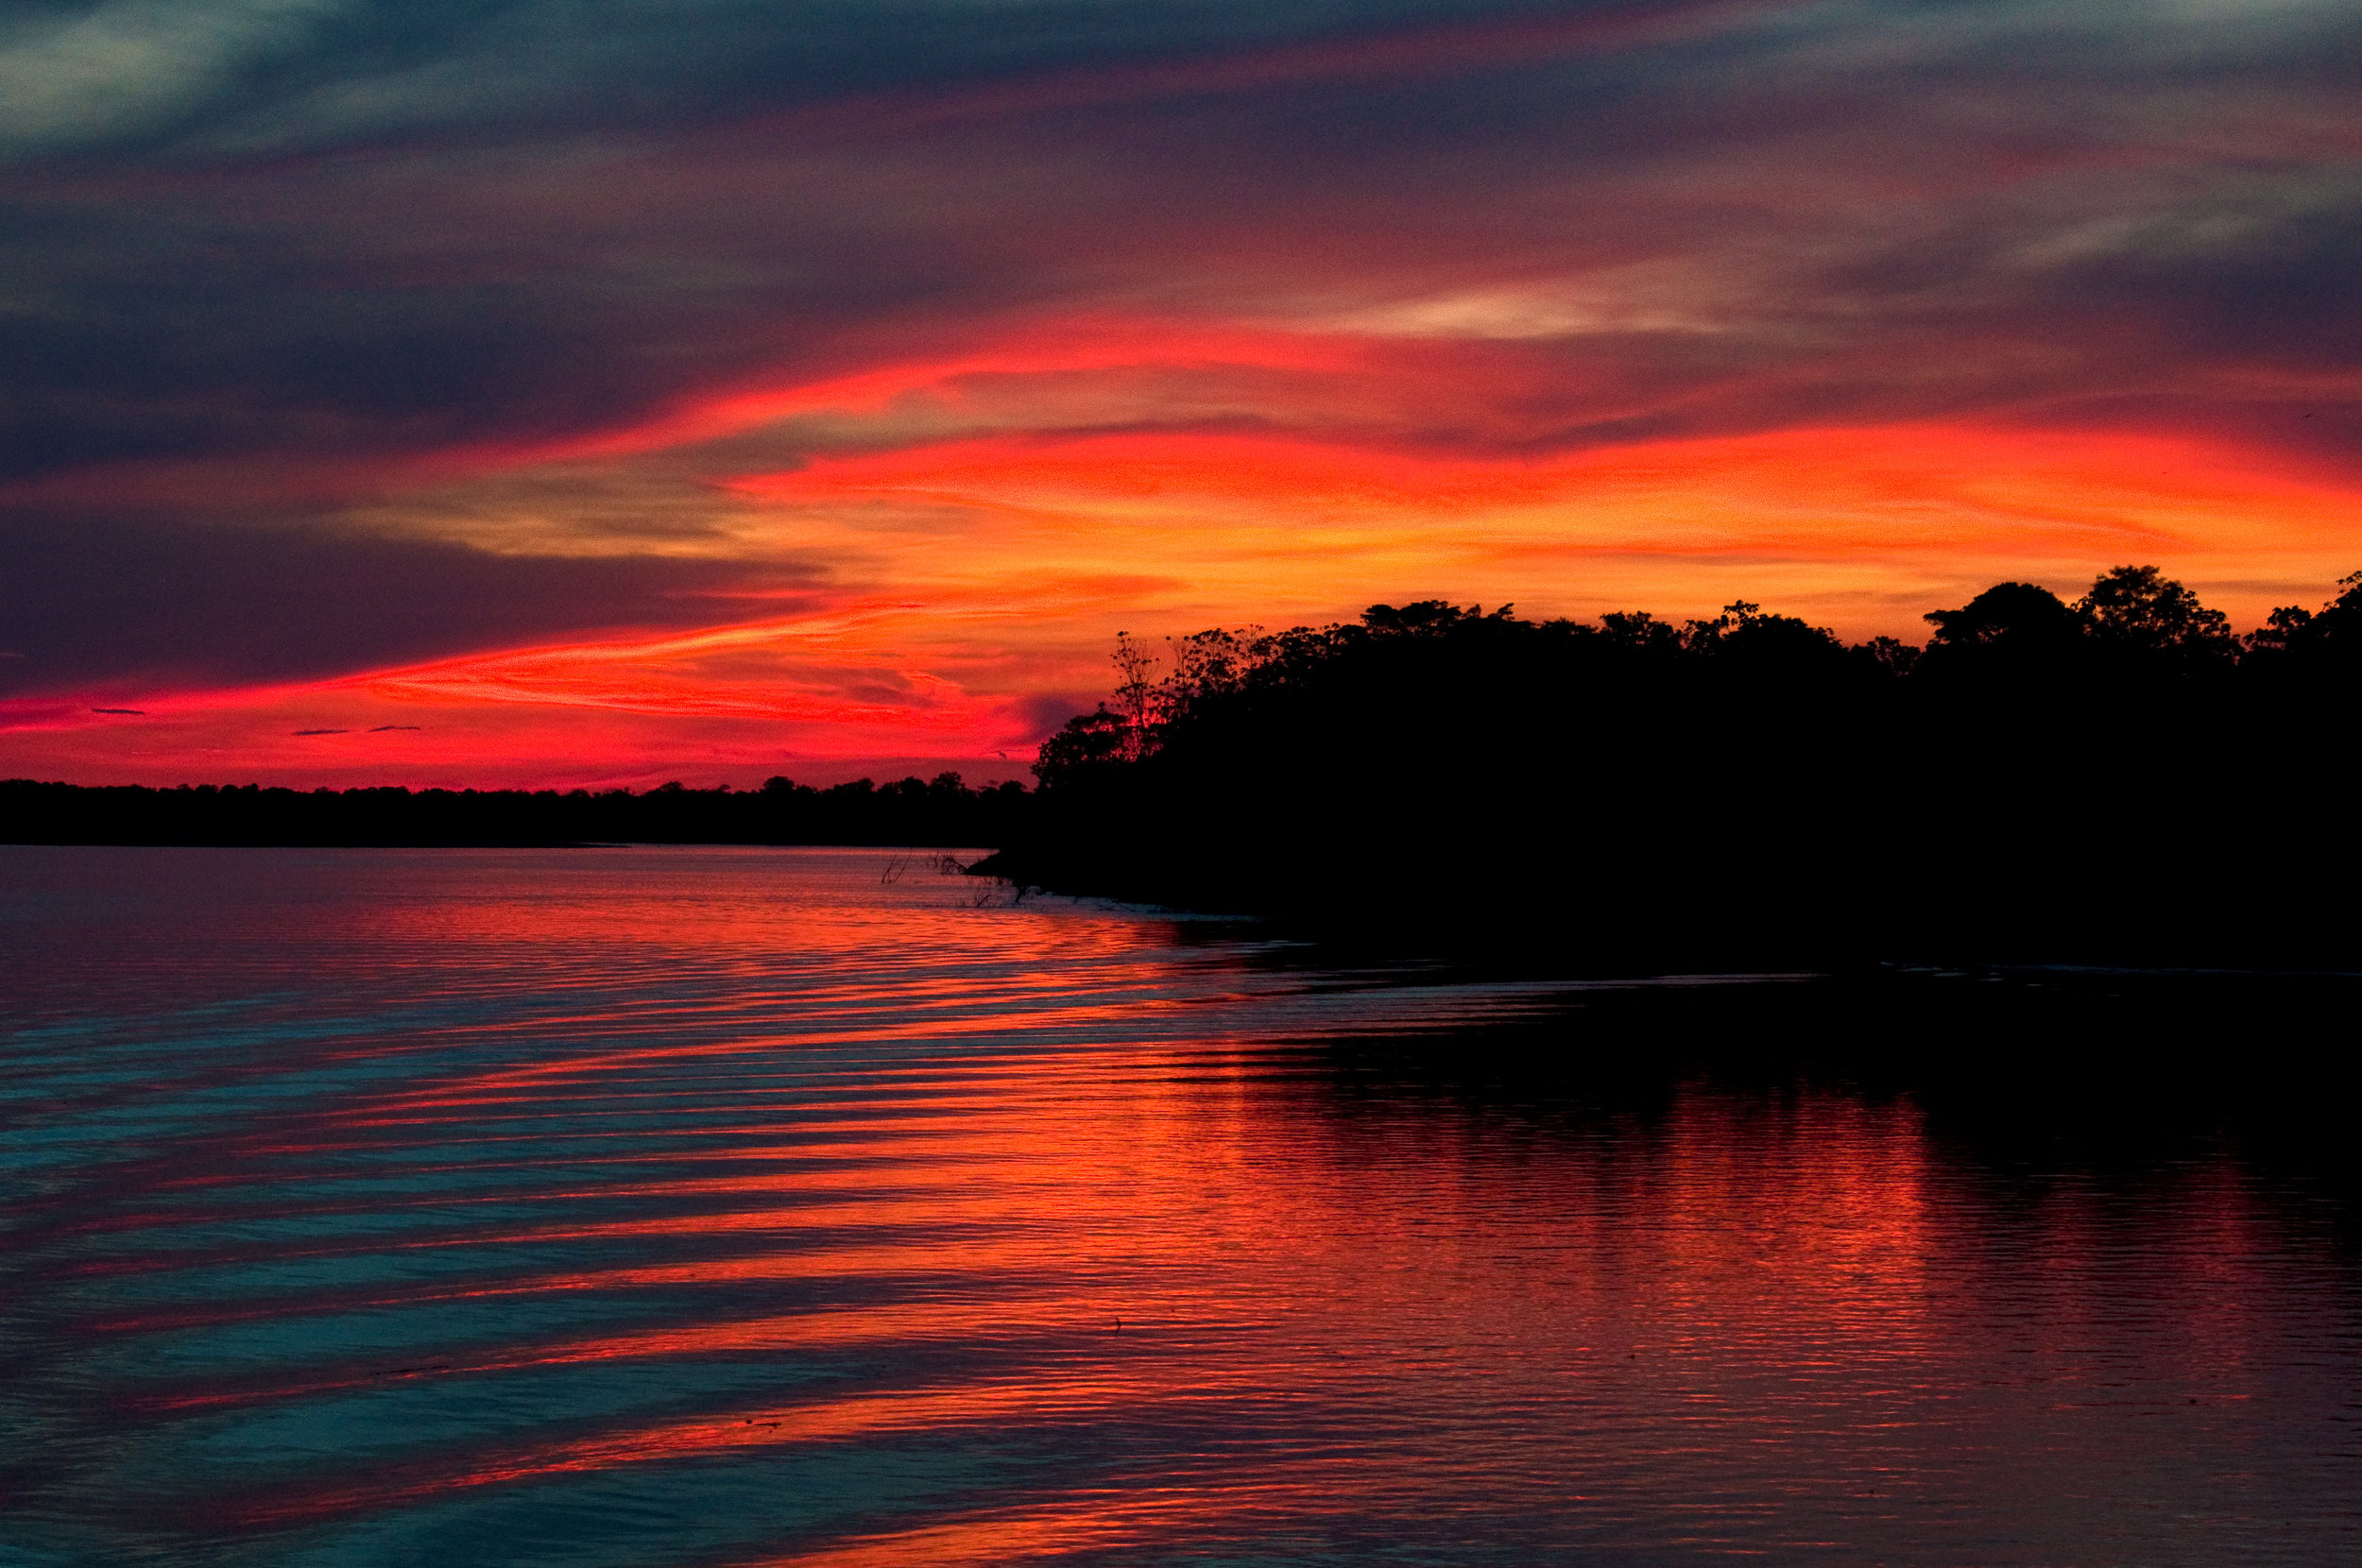 Stunning sunset views on the River in the Amazon